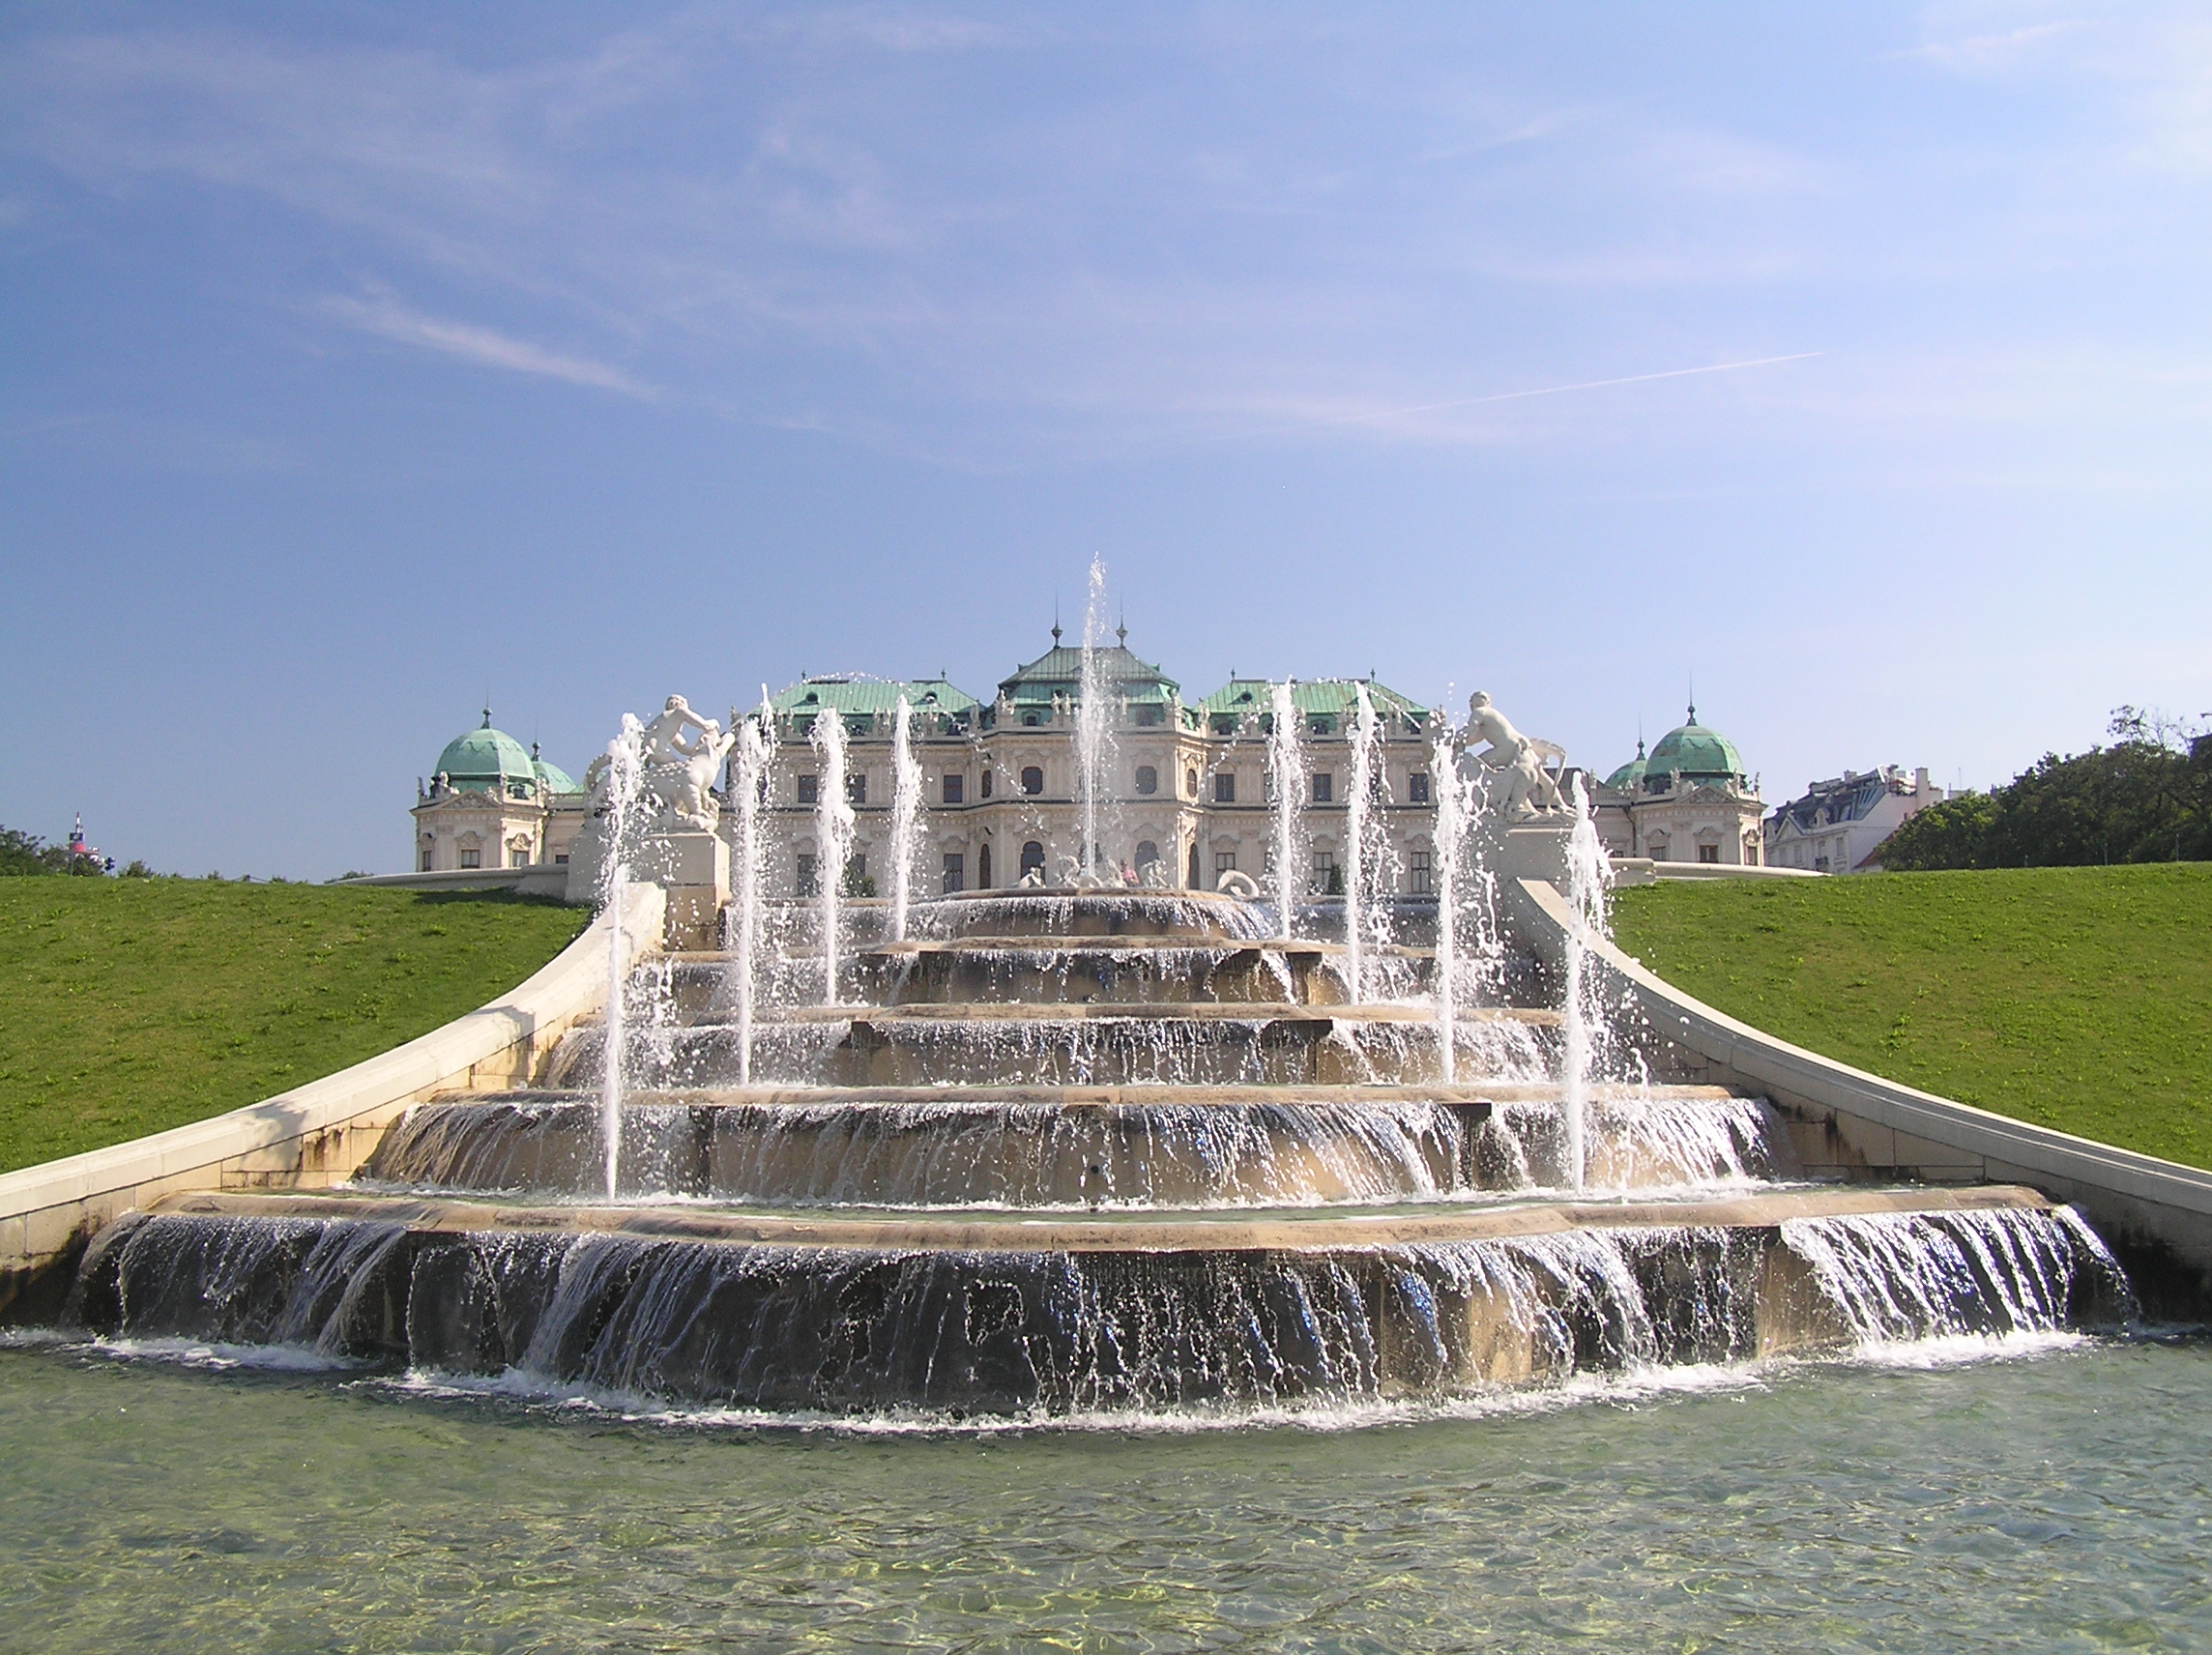 https://upload.wikimedia.org/wikipedia/commons/f/f1/Schloss_Belvedere_-_Brunnen_(07).JPG